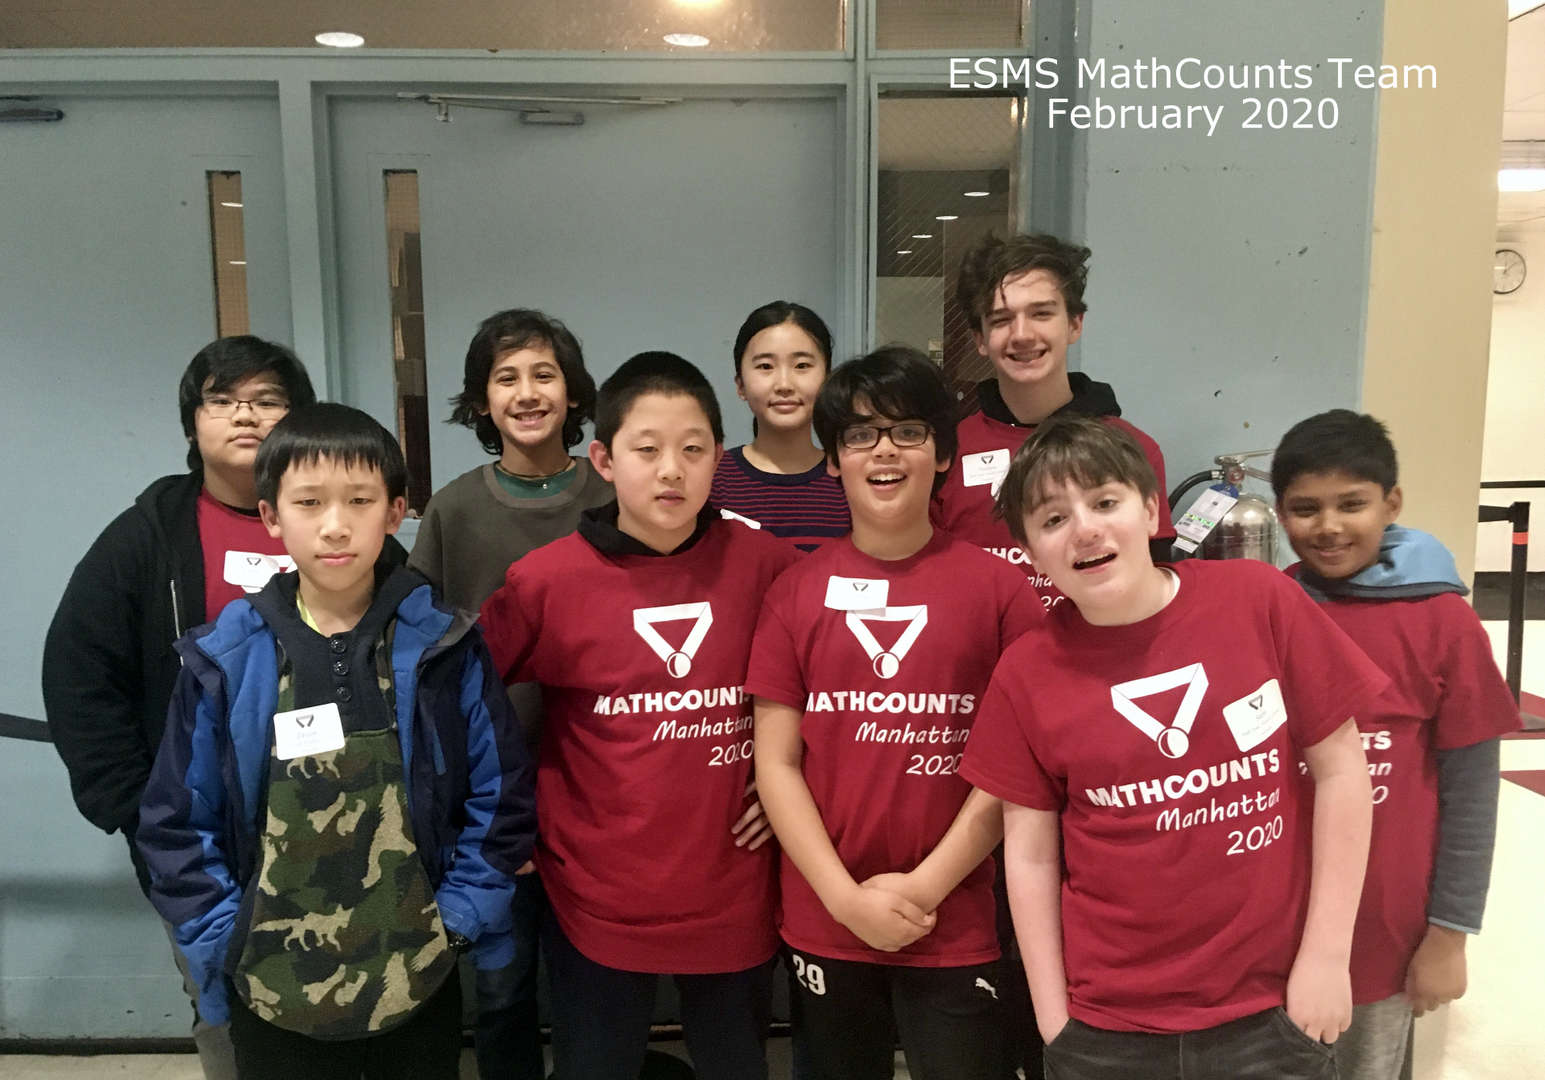 ESMS MathCounts Team 2020